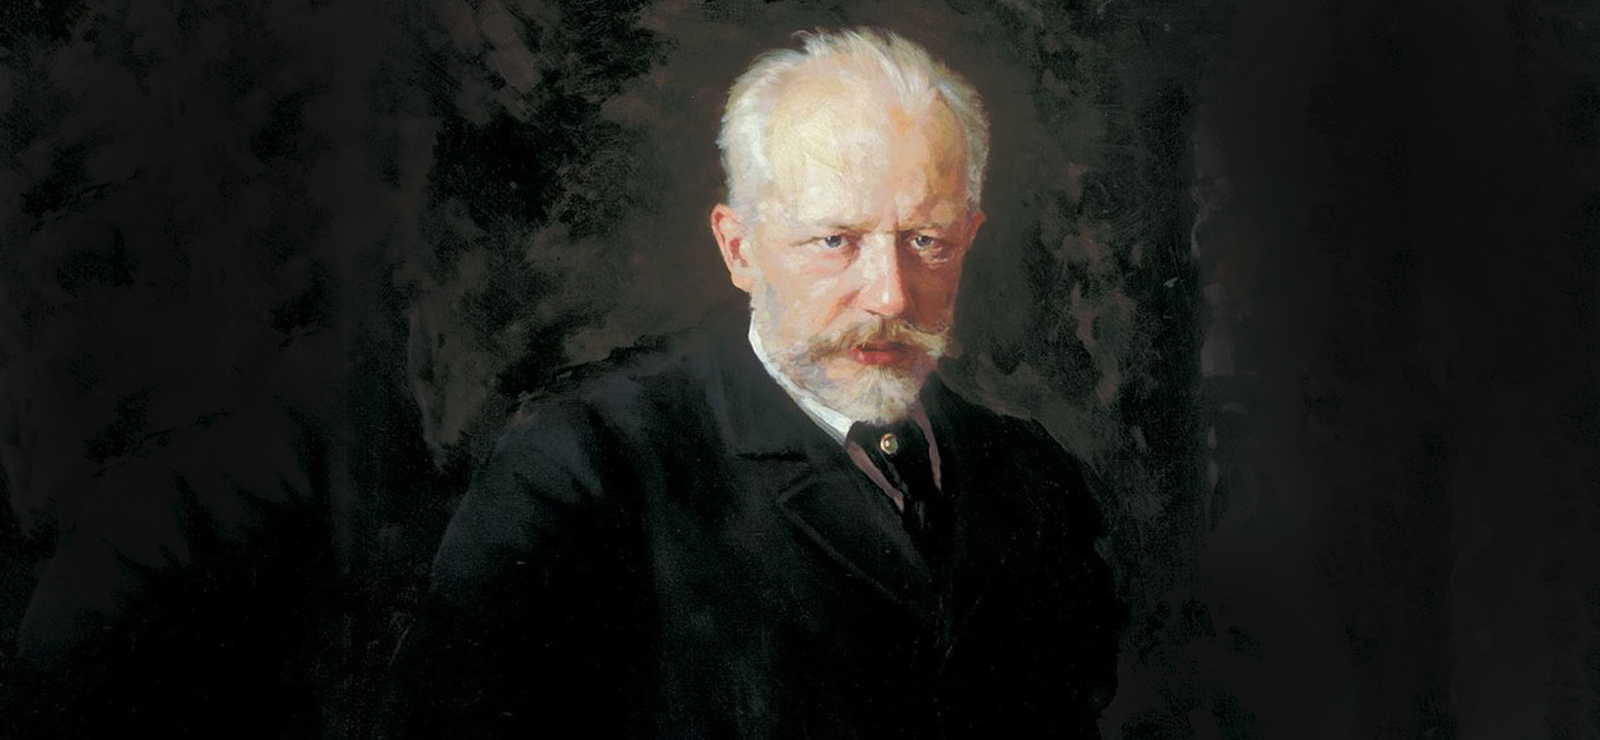 [Program TwoSoul or Craftsmanship?] Portrait of Pyotr Ilyich Tchaikovsky by Nikolai Kuznetsov; Wikimedia Commons